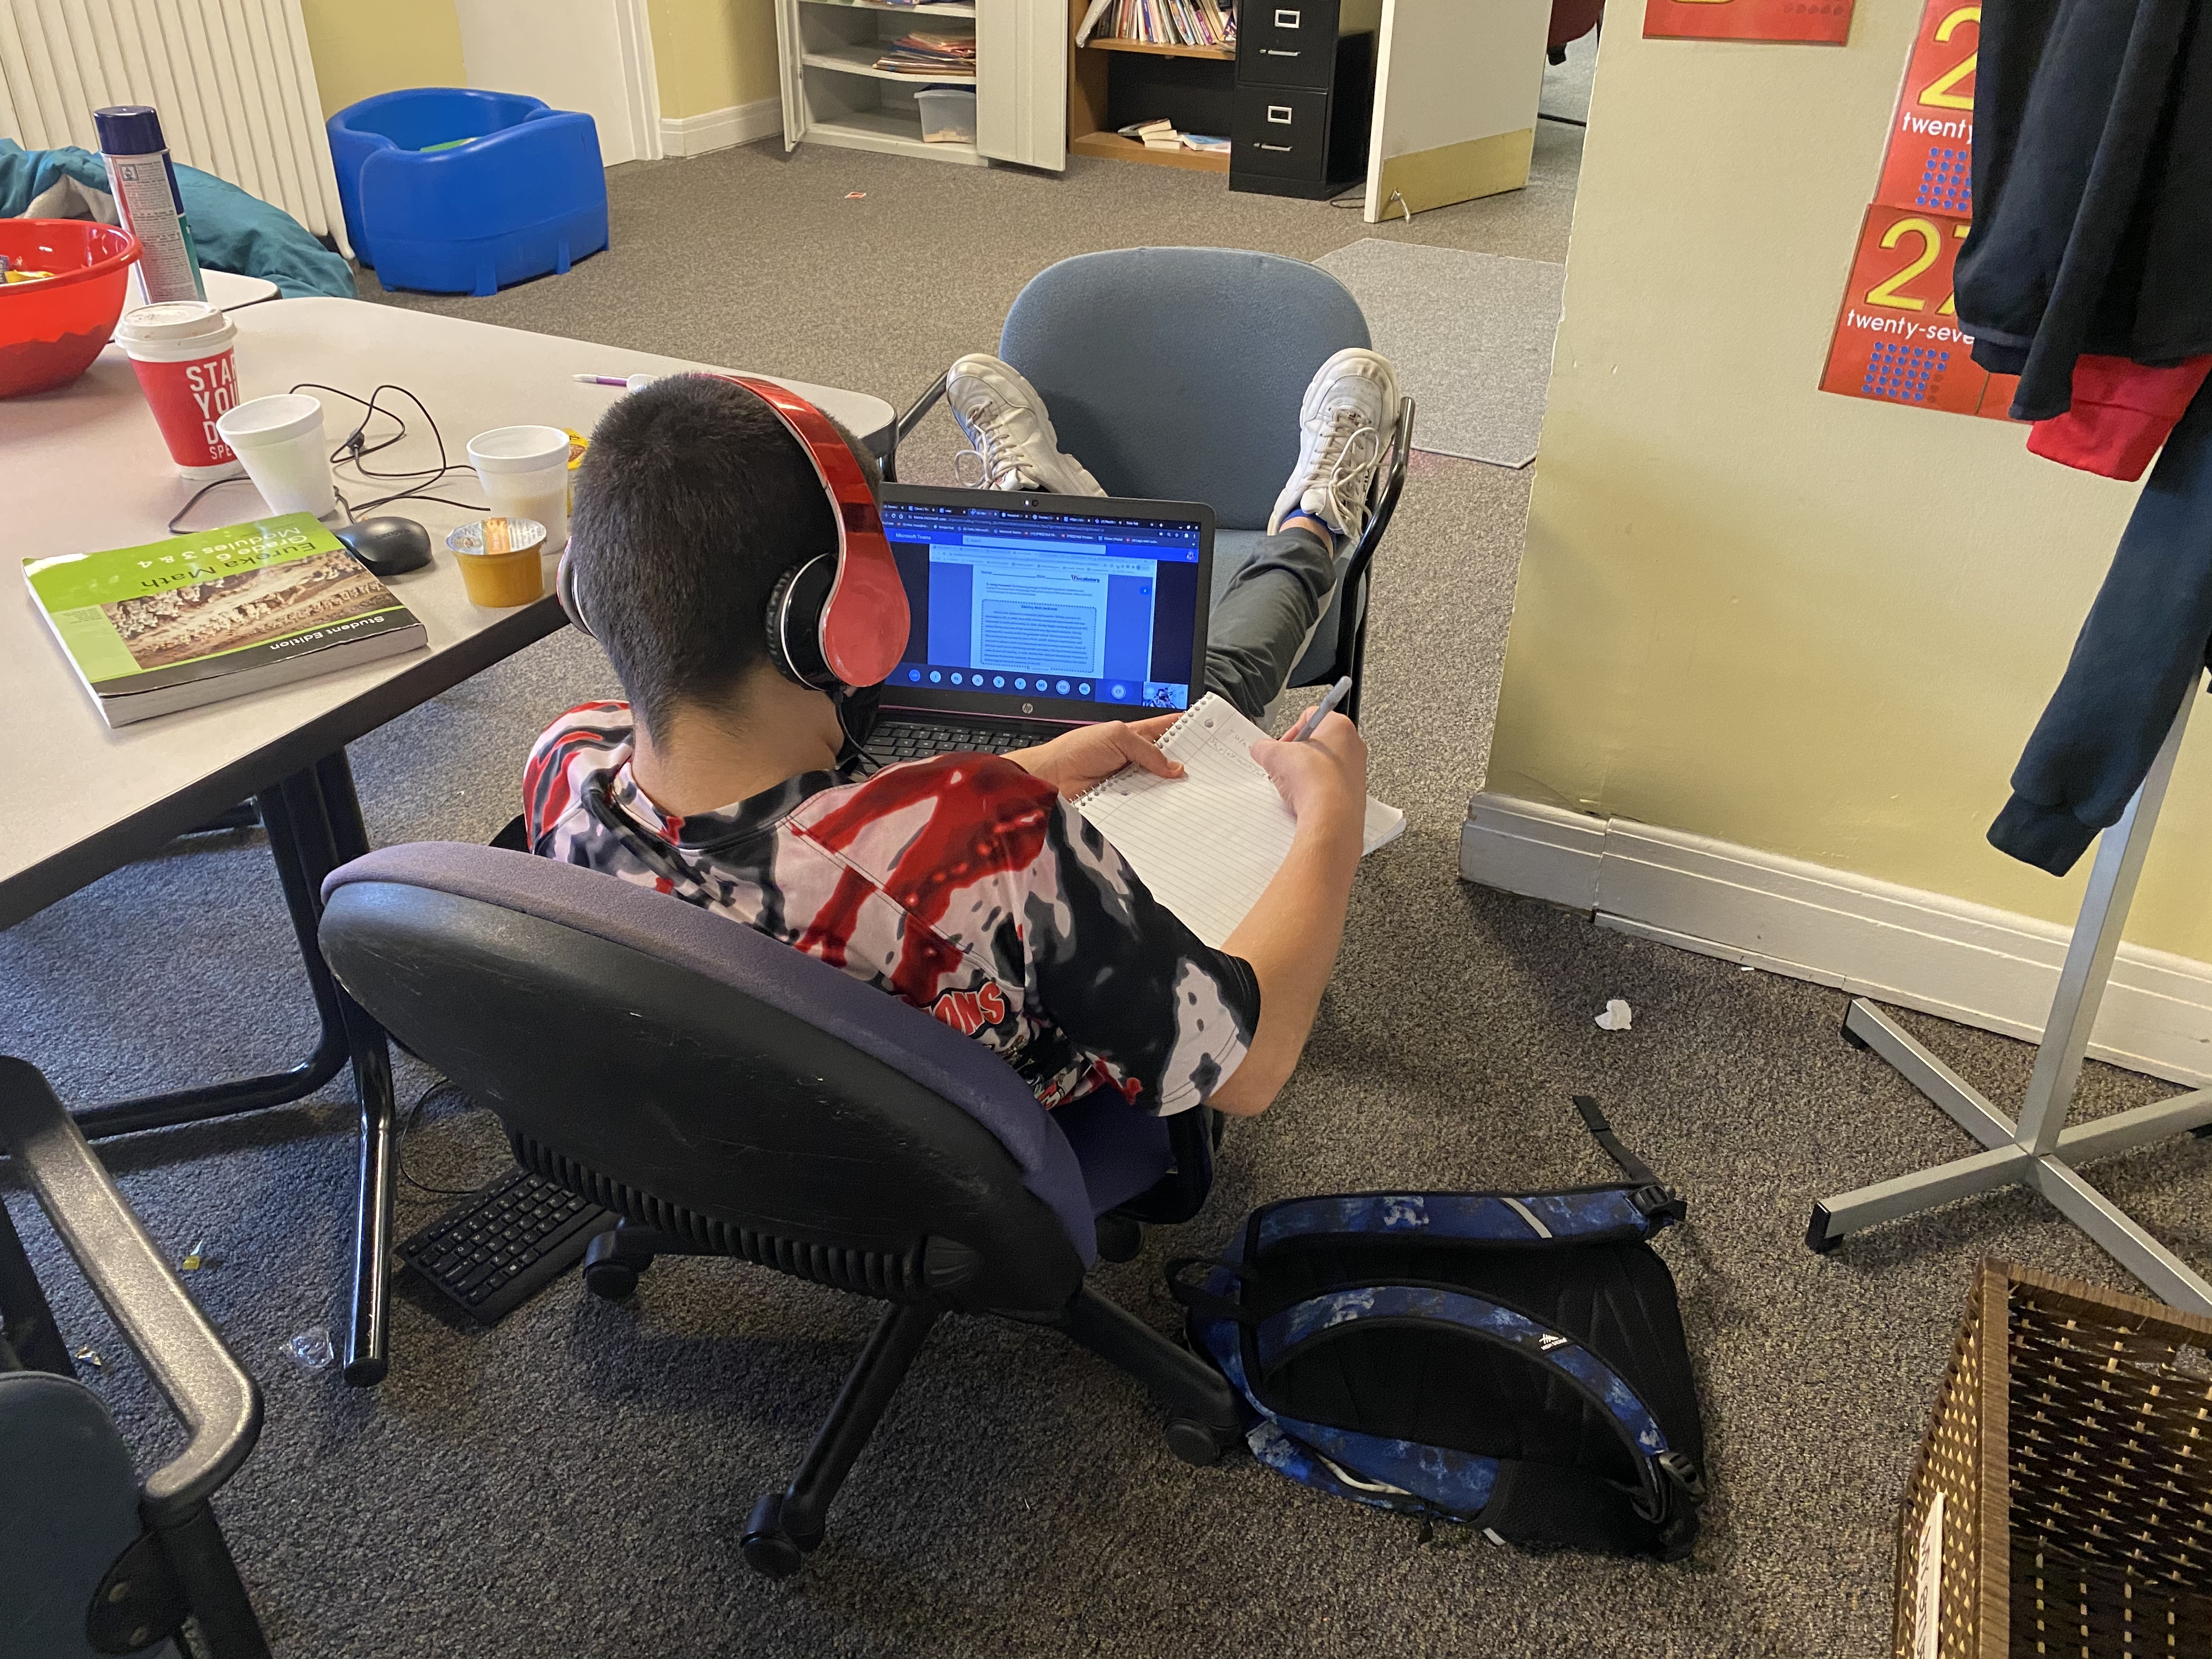 A student with headphones on sits in a chair writing in a notebook with a computer on his lap in a room.